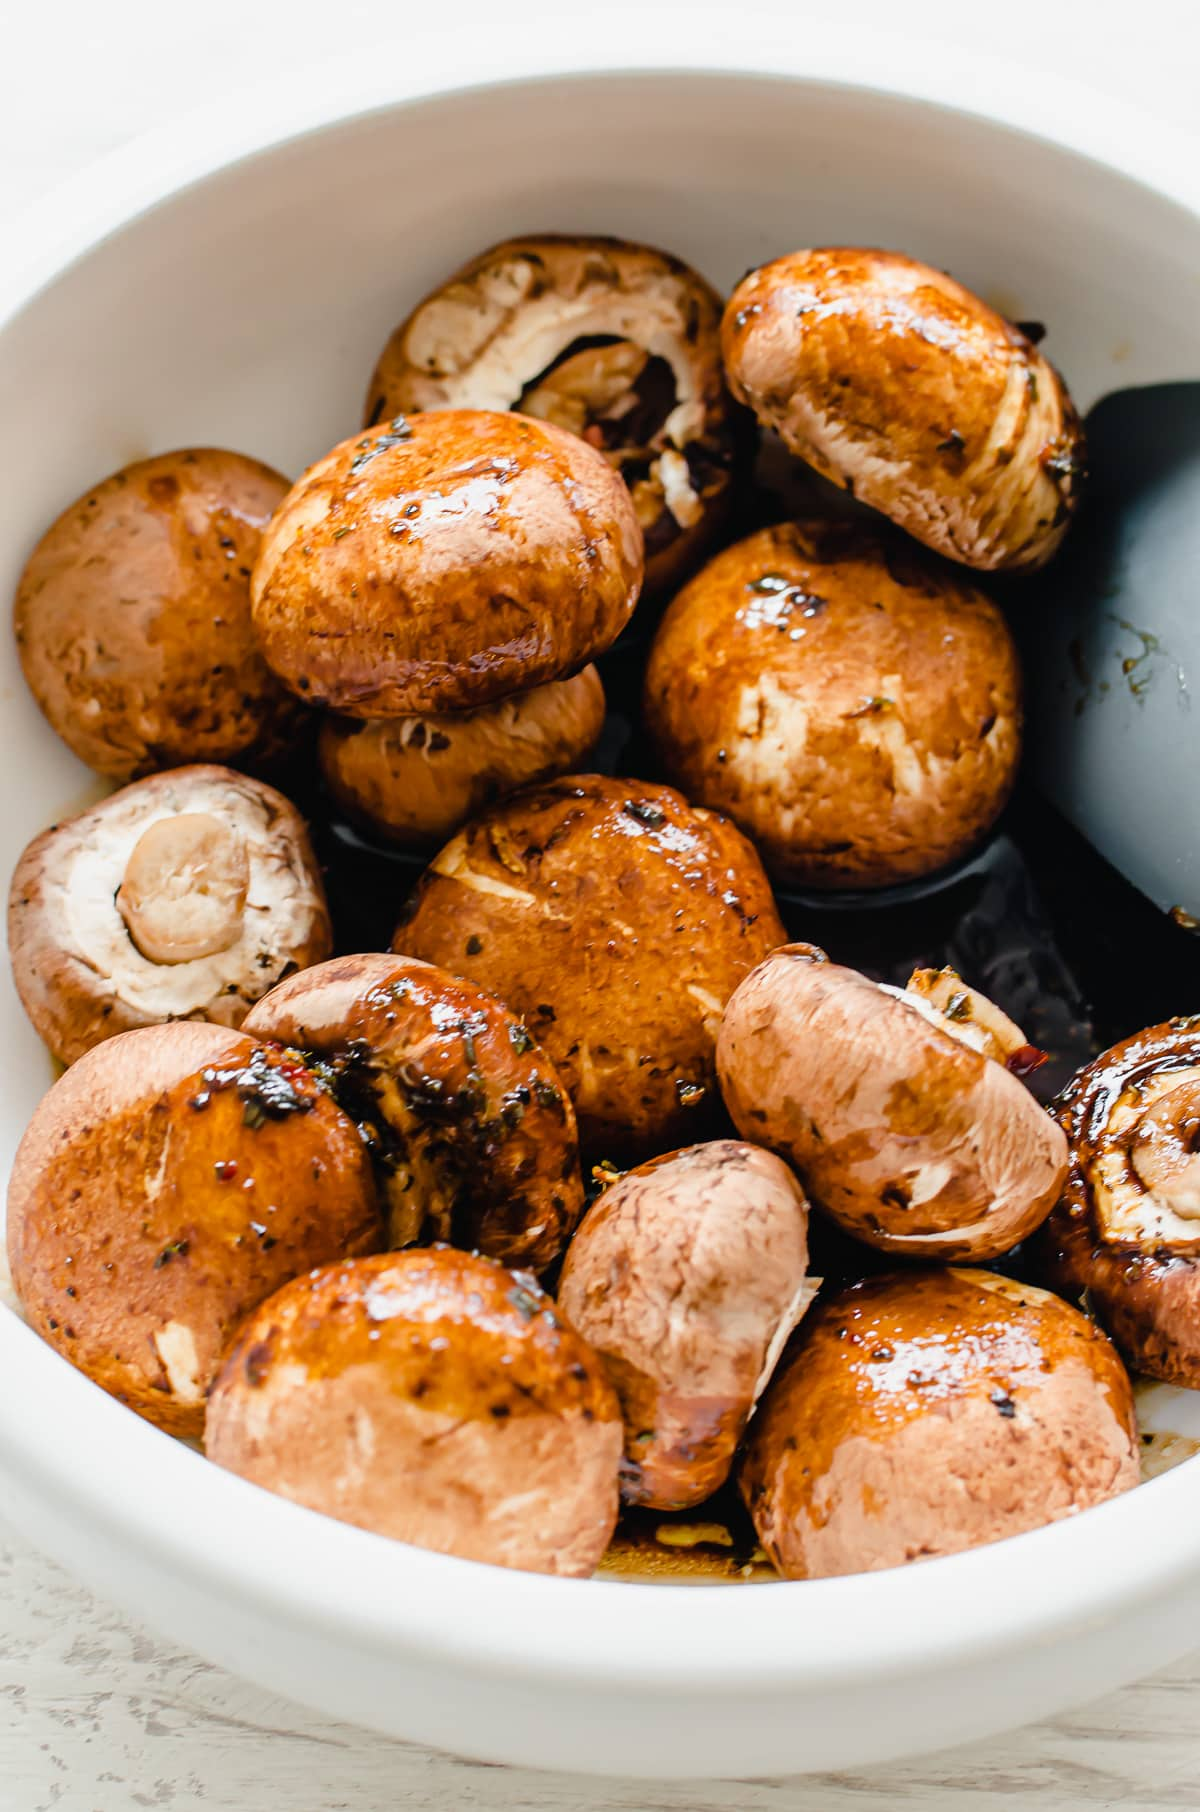 A white bowl with bella mushrooms being tossed in a balsamic sauce.